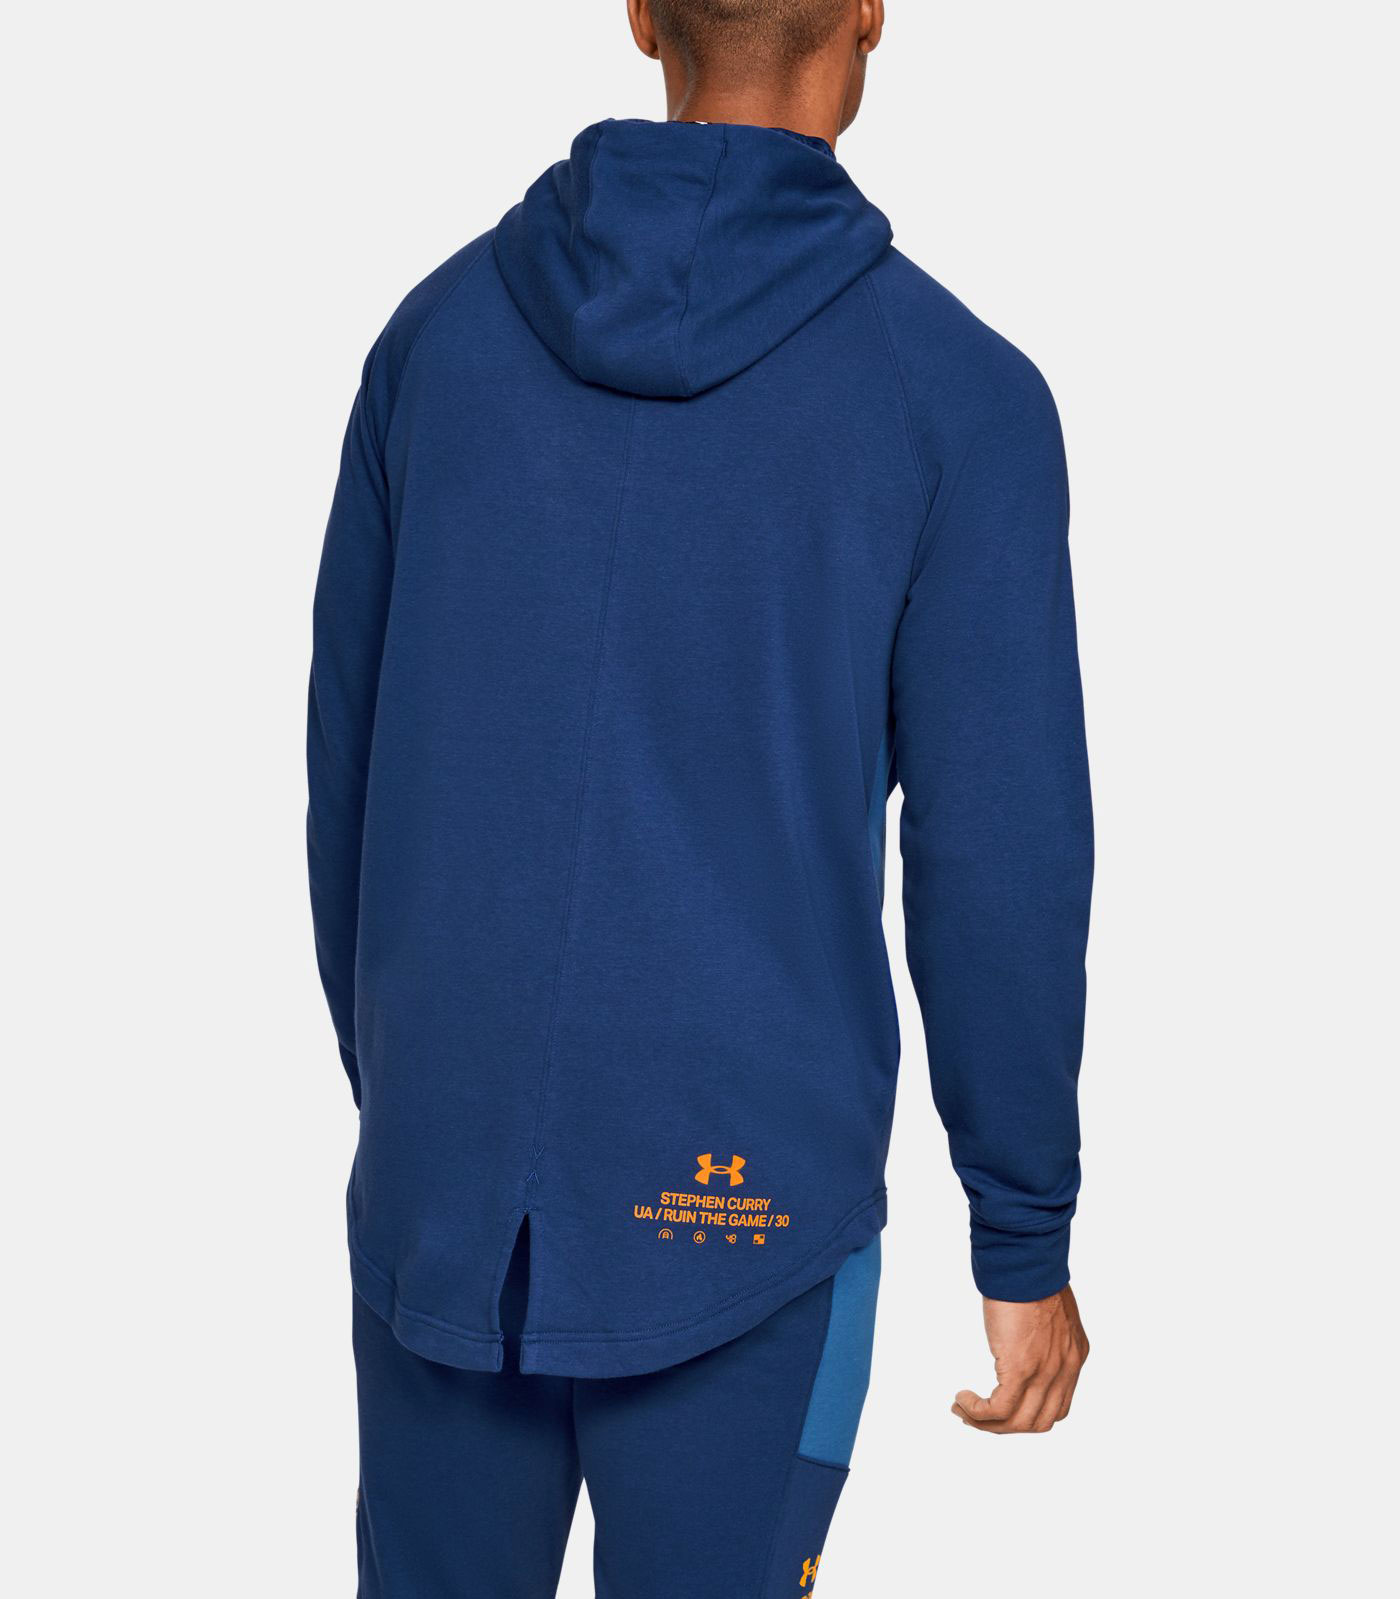 curry-7-super-soaker-hoodie-match-3